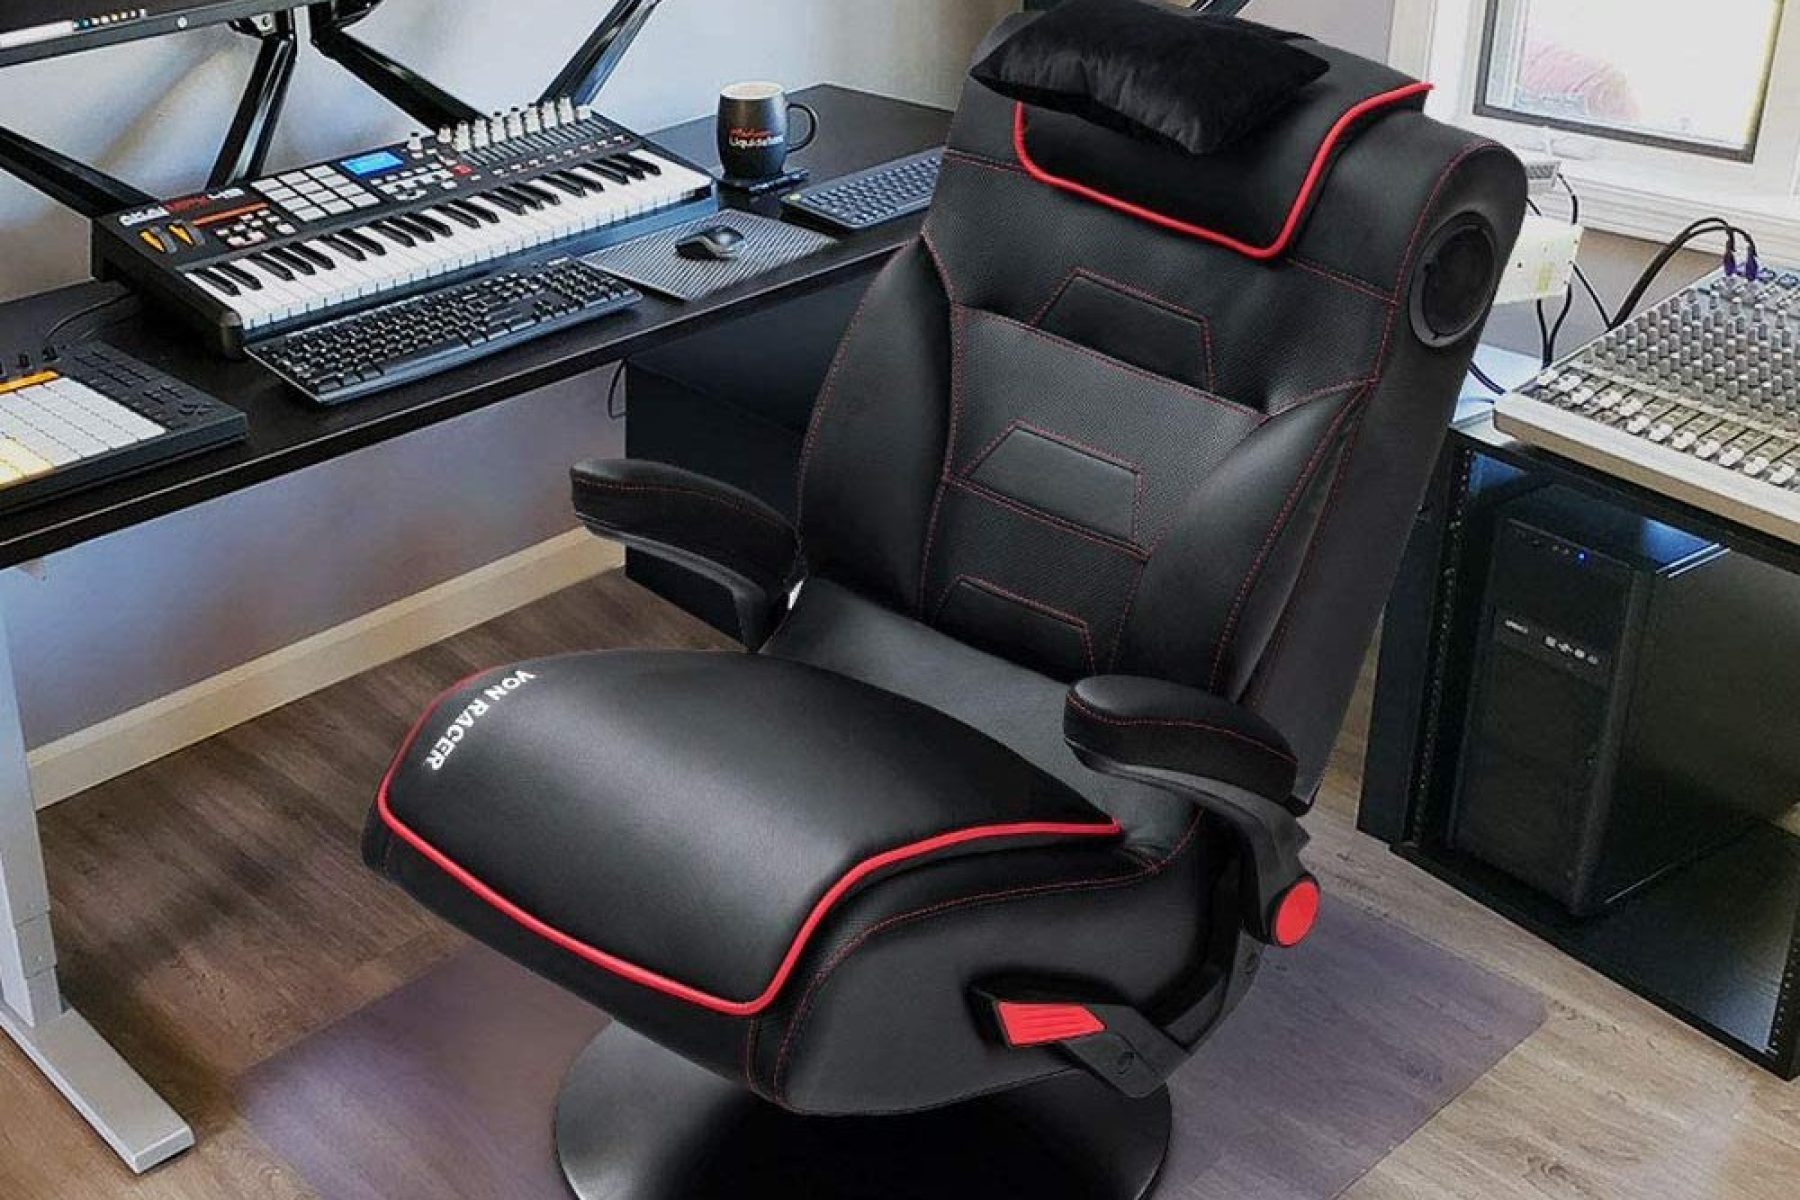 Shop Best Gaming Chairs With Speakers (2020) for PC, Xbox & PS4